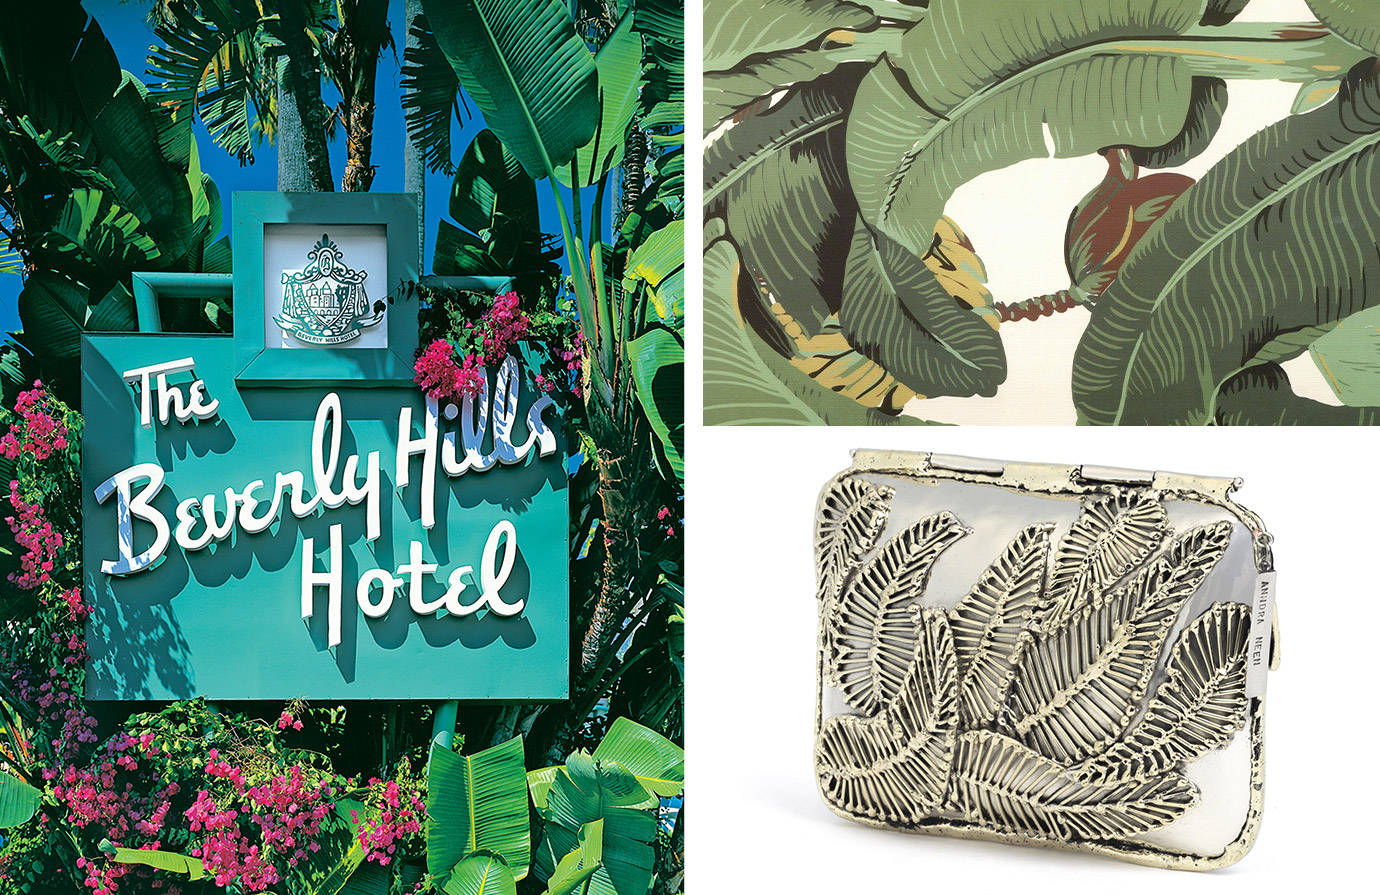 download beverly hills hotel palm wallpaper gallery